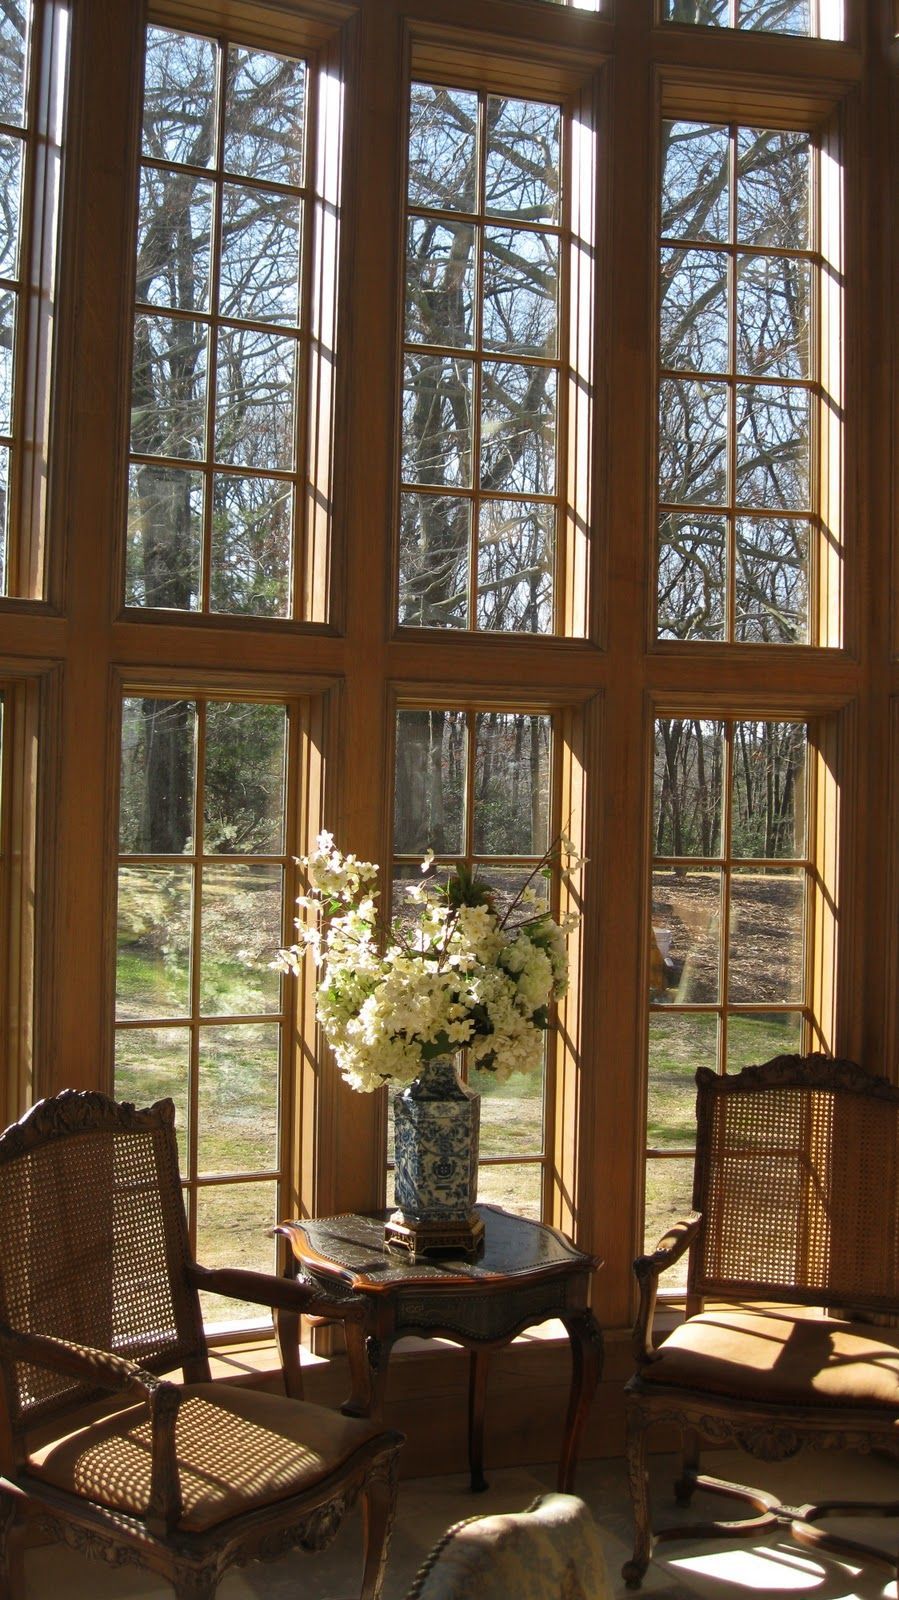 Any Shape Or Size Solar Gard Window Film Can Make All The Difference In Your Home